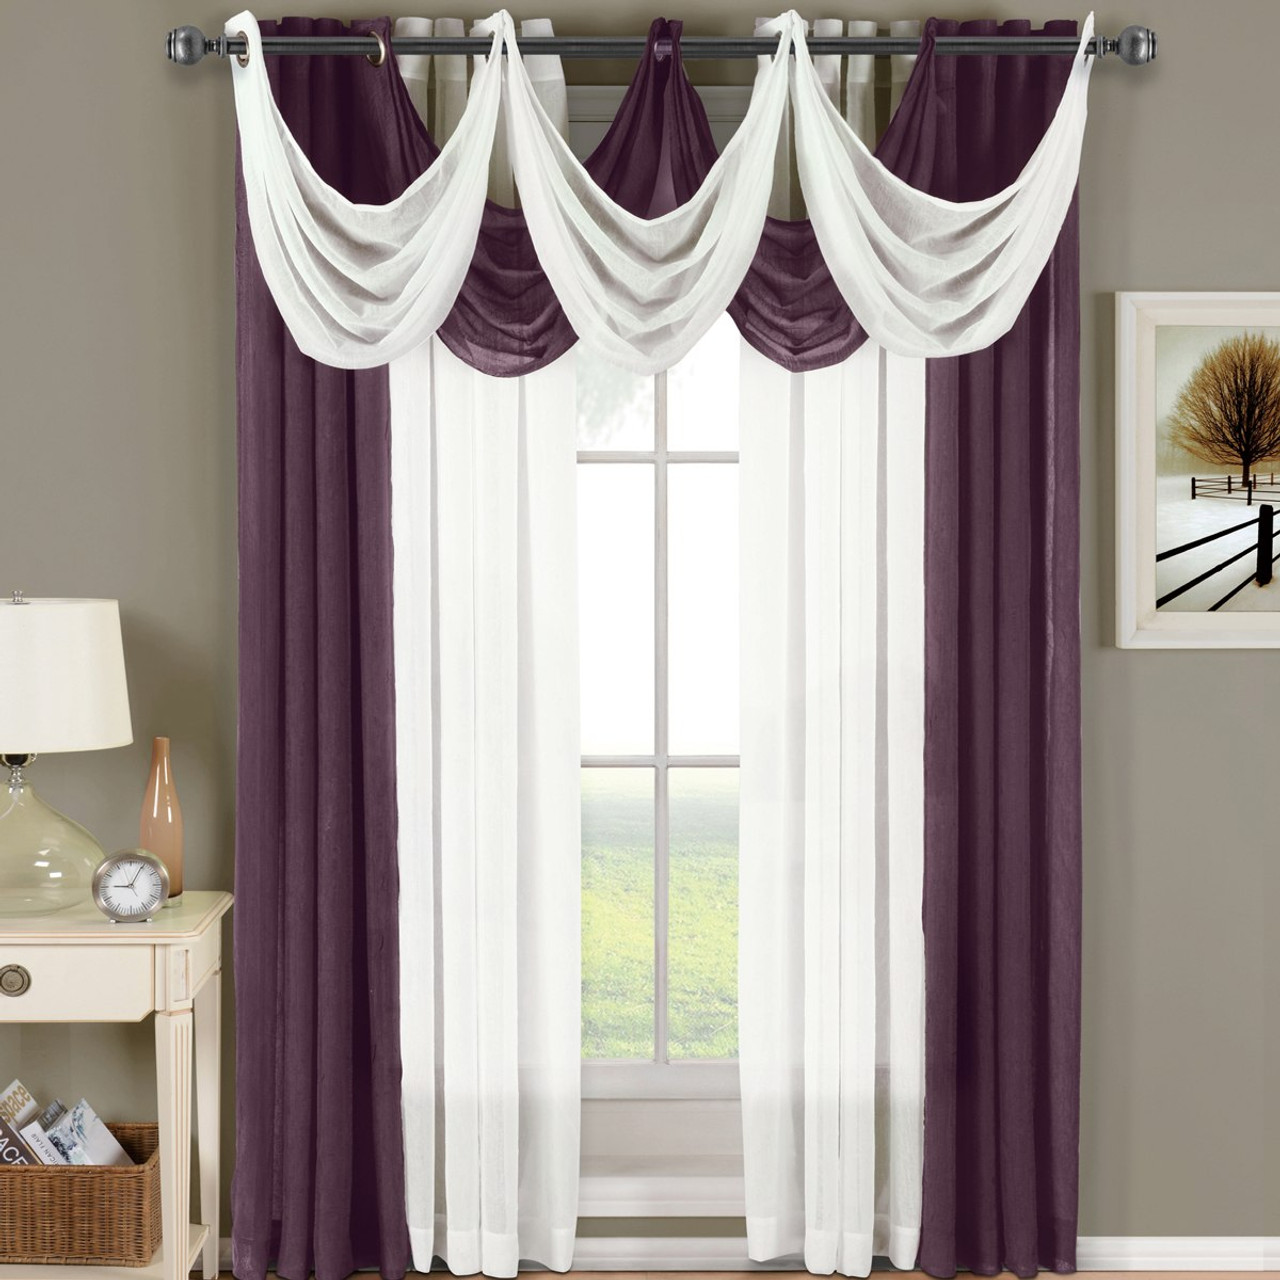 Aubergine and green curtains